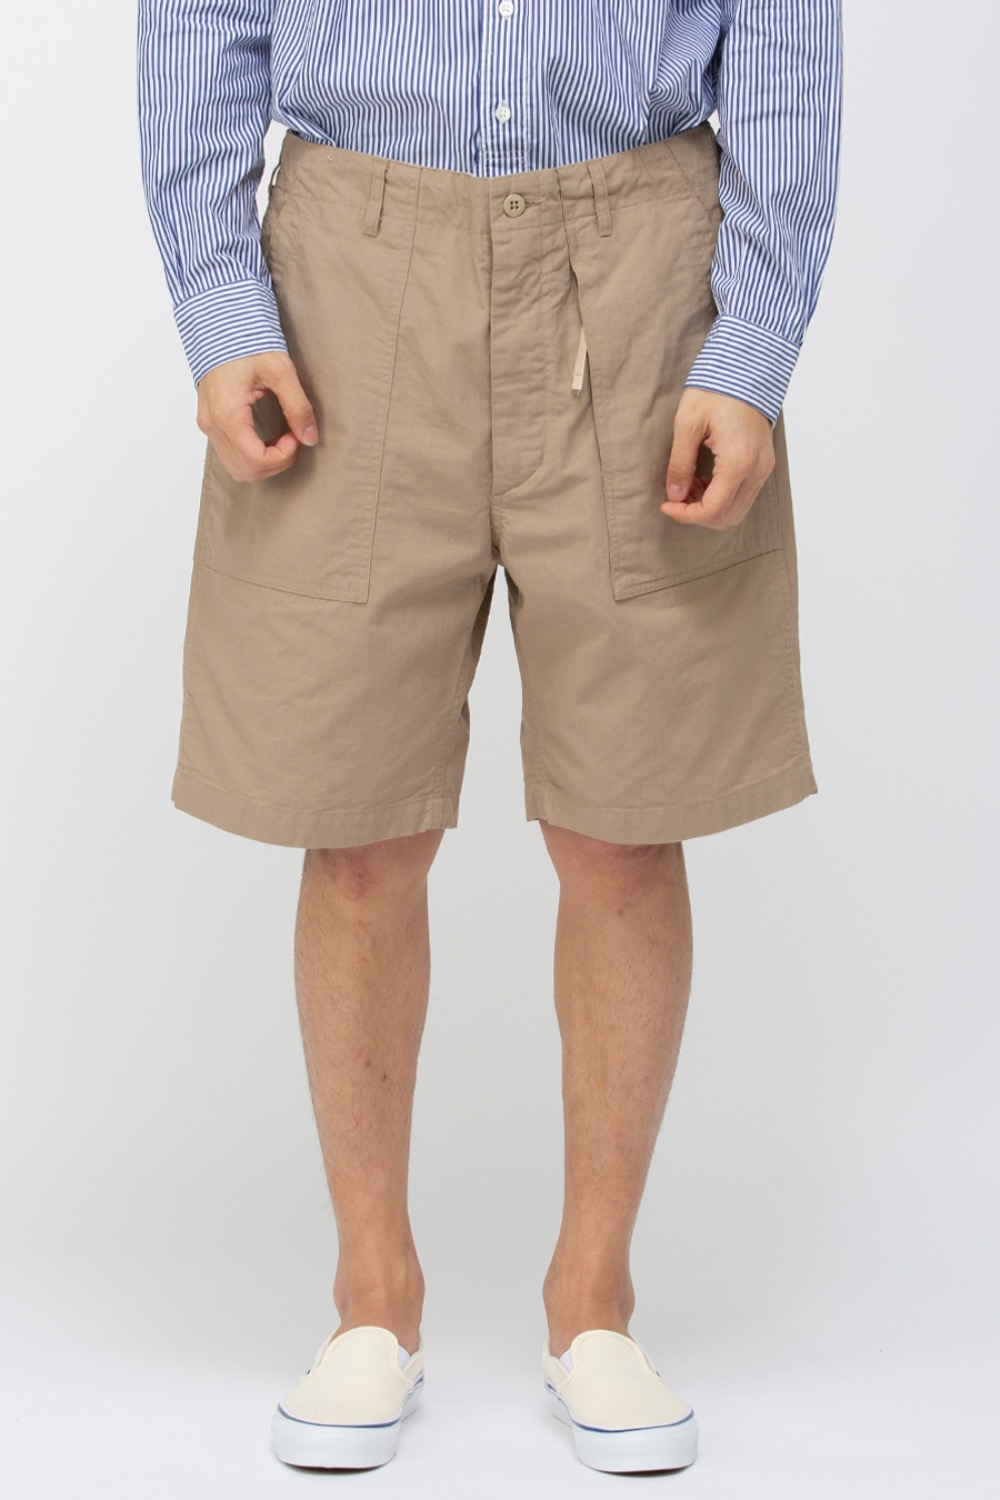 FATIGUE SHORT COTTON RIPSTIOP KHAKI